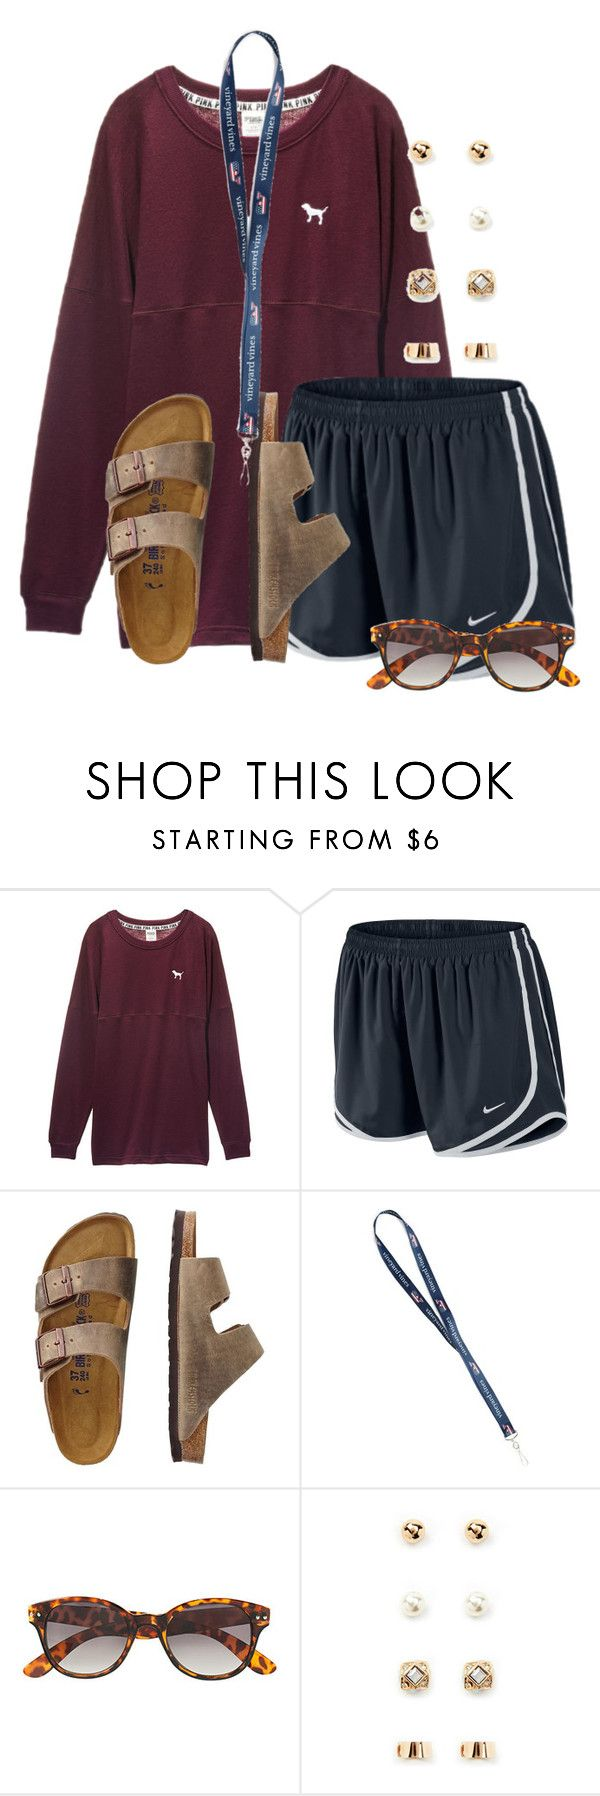 """""""Going out for ice cream after dinner for a last hoorah before school tomorrow"""" by flroasburn ❤ liked on Polyvore featuring Victoria's Secret, NIKE, TravelSmith, H&M and Forever 21"""